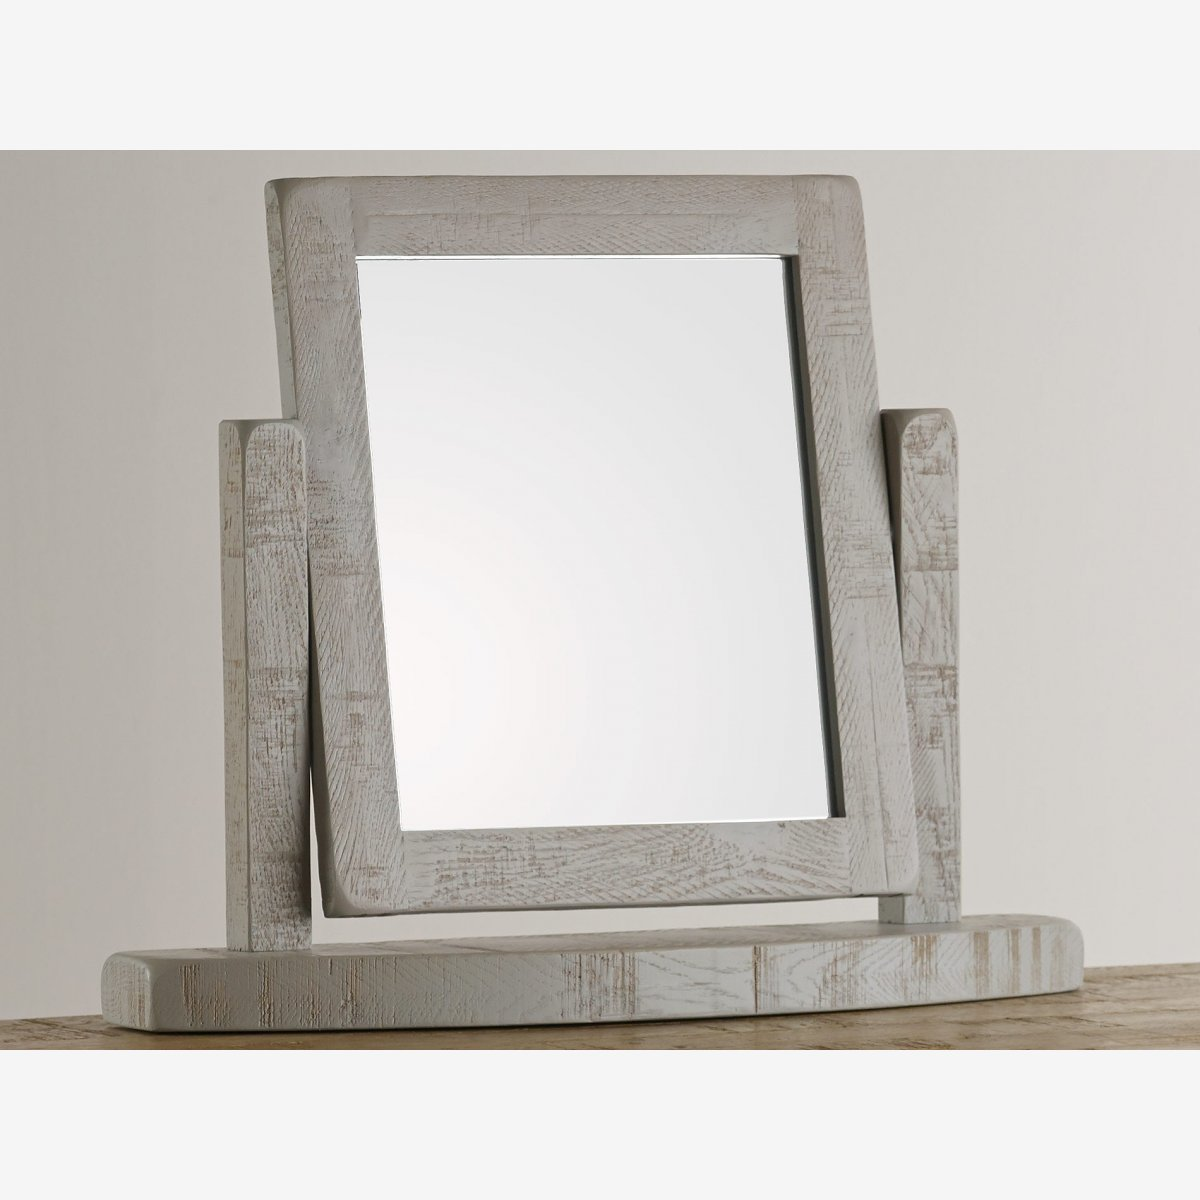 Clermont rough sawn oak and painted dressing table mirror for Dressing mirror